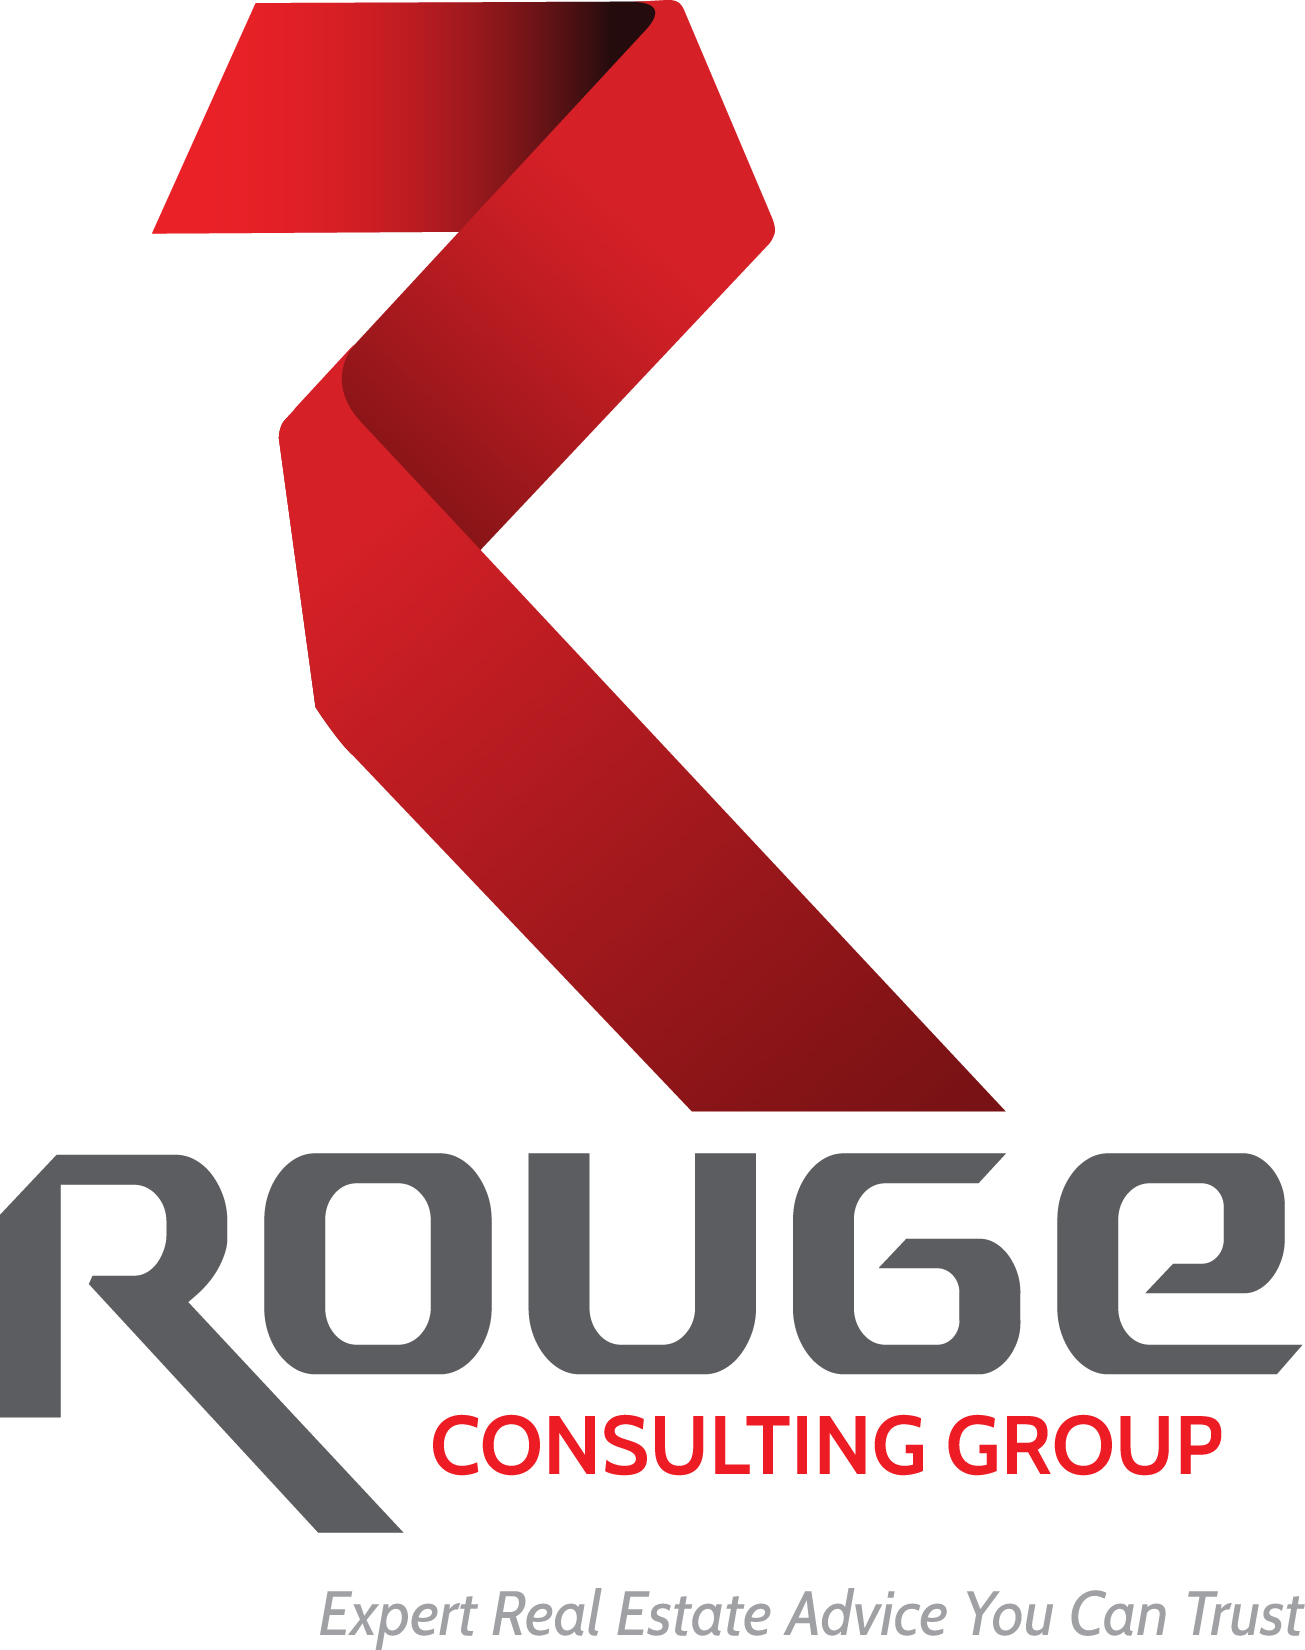 Rouge Consulting Group